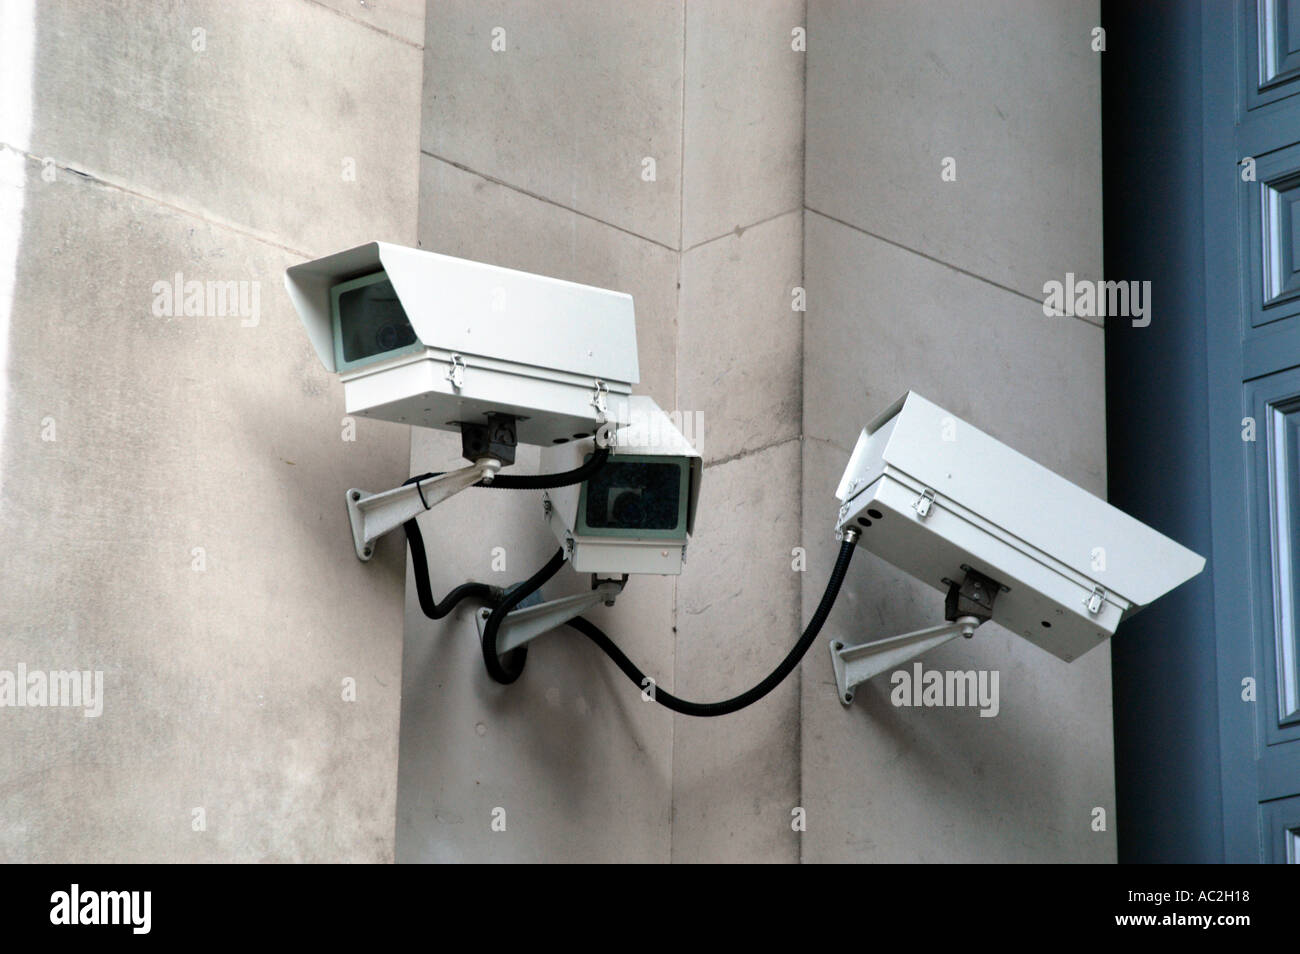 CCTV-Überwachungskameras London England UK Stockbild